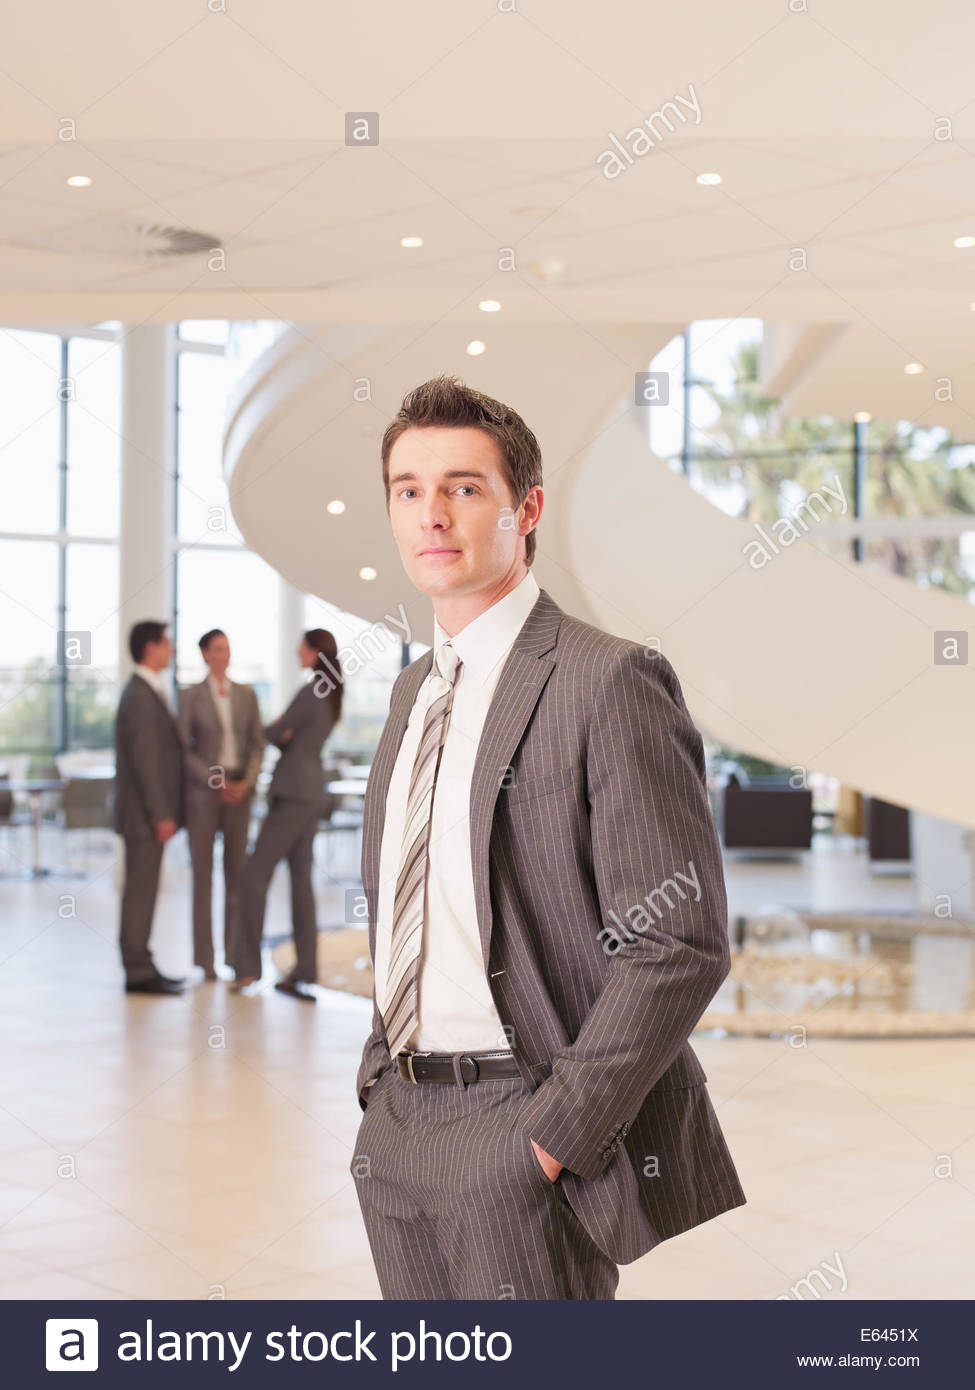 Businessman standing in office lobby - Stock Image